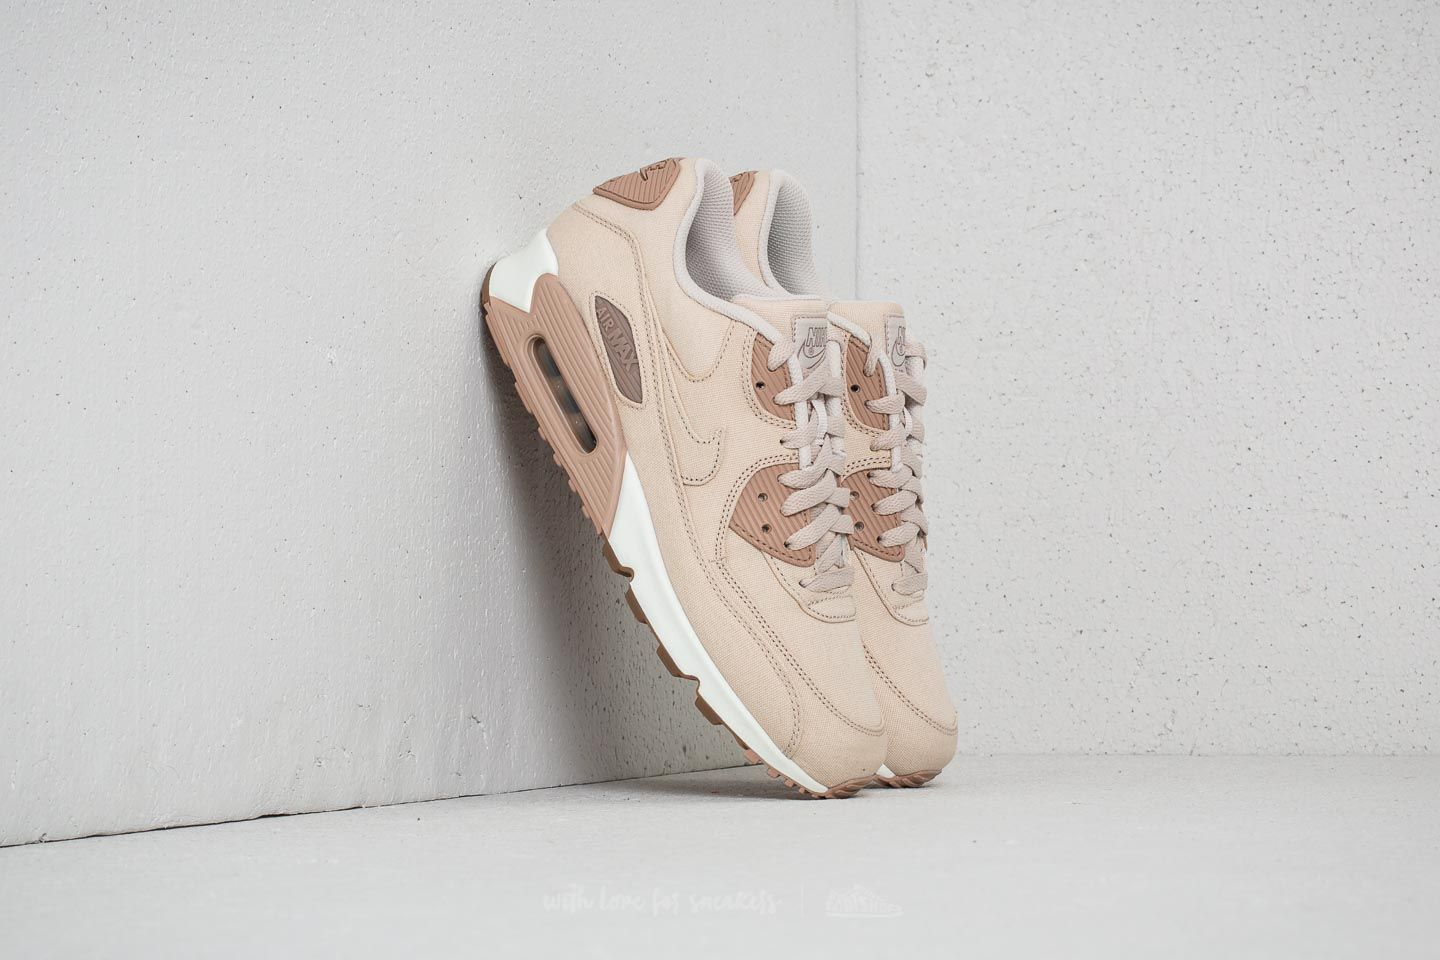 separation shoes 7cce2 ac291 Nike Air Max 90 TXT